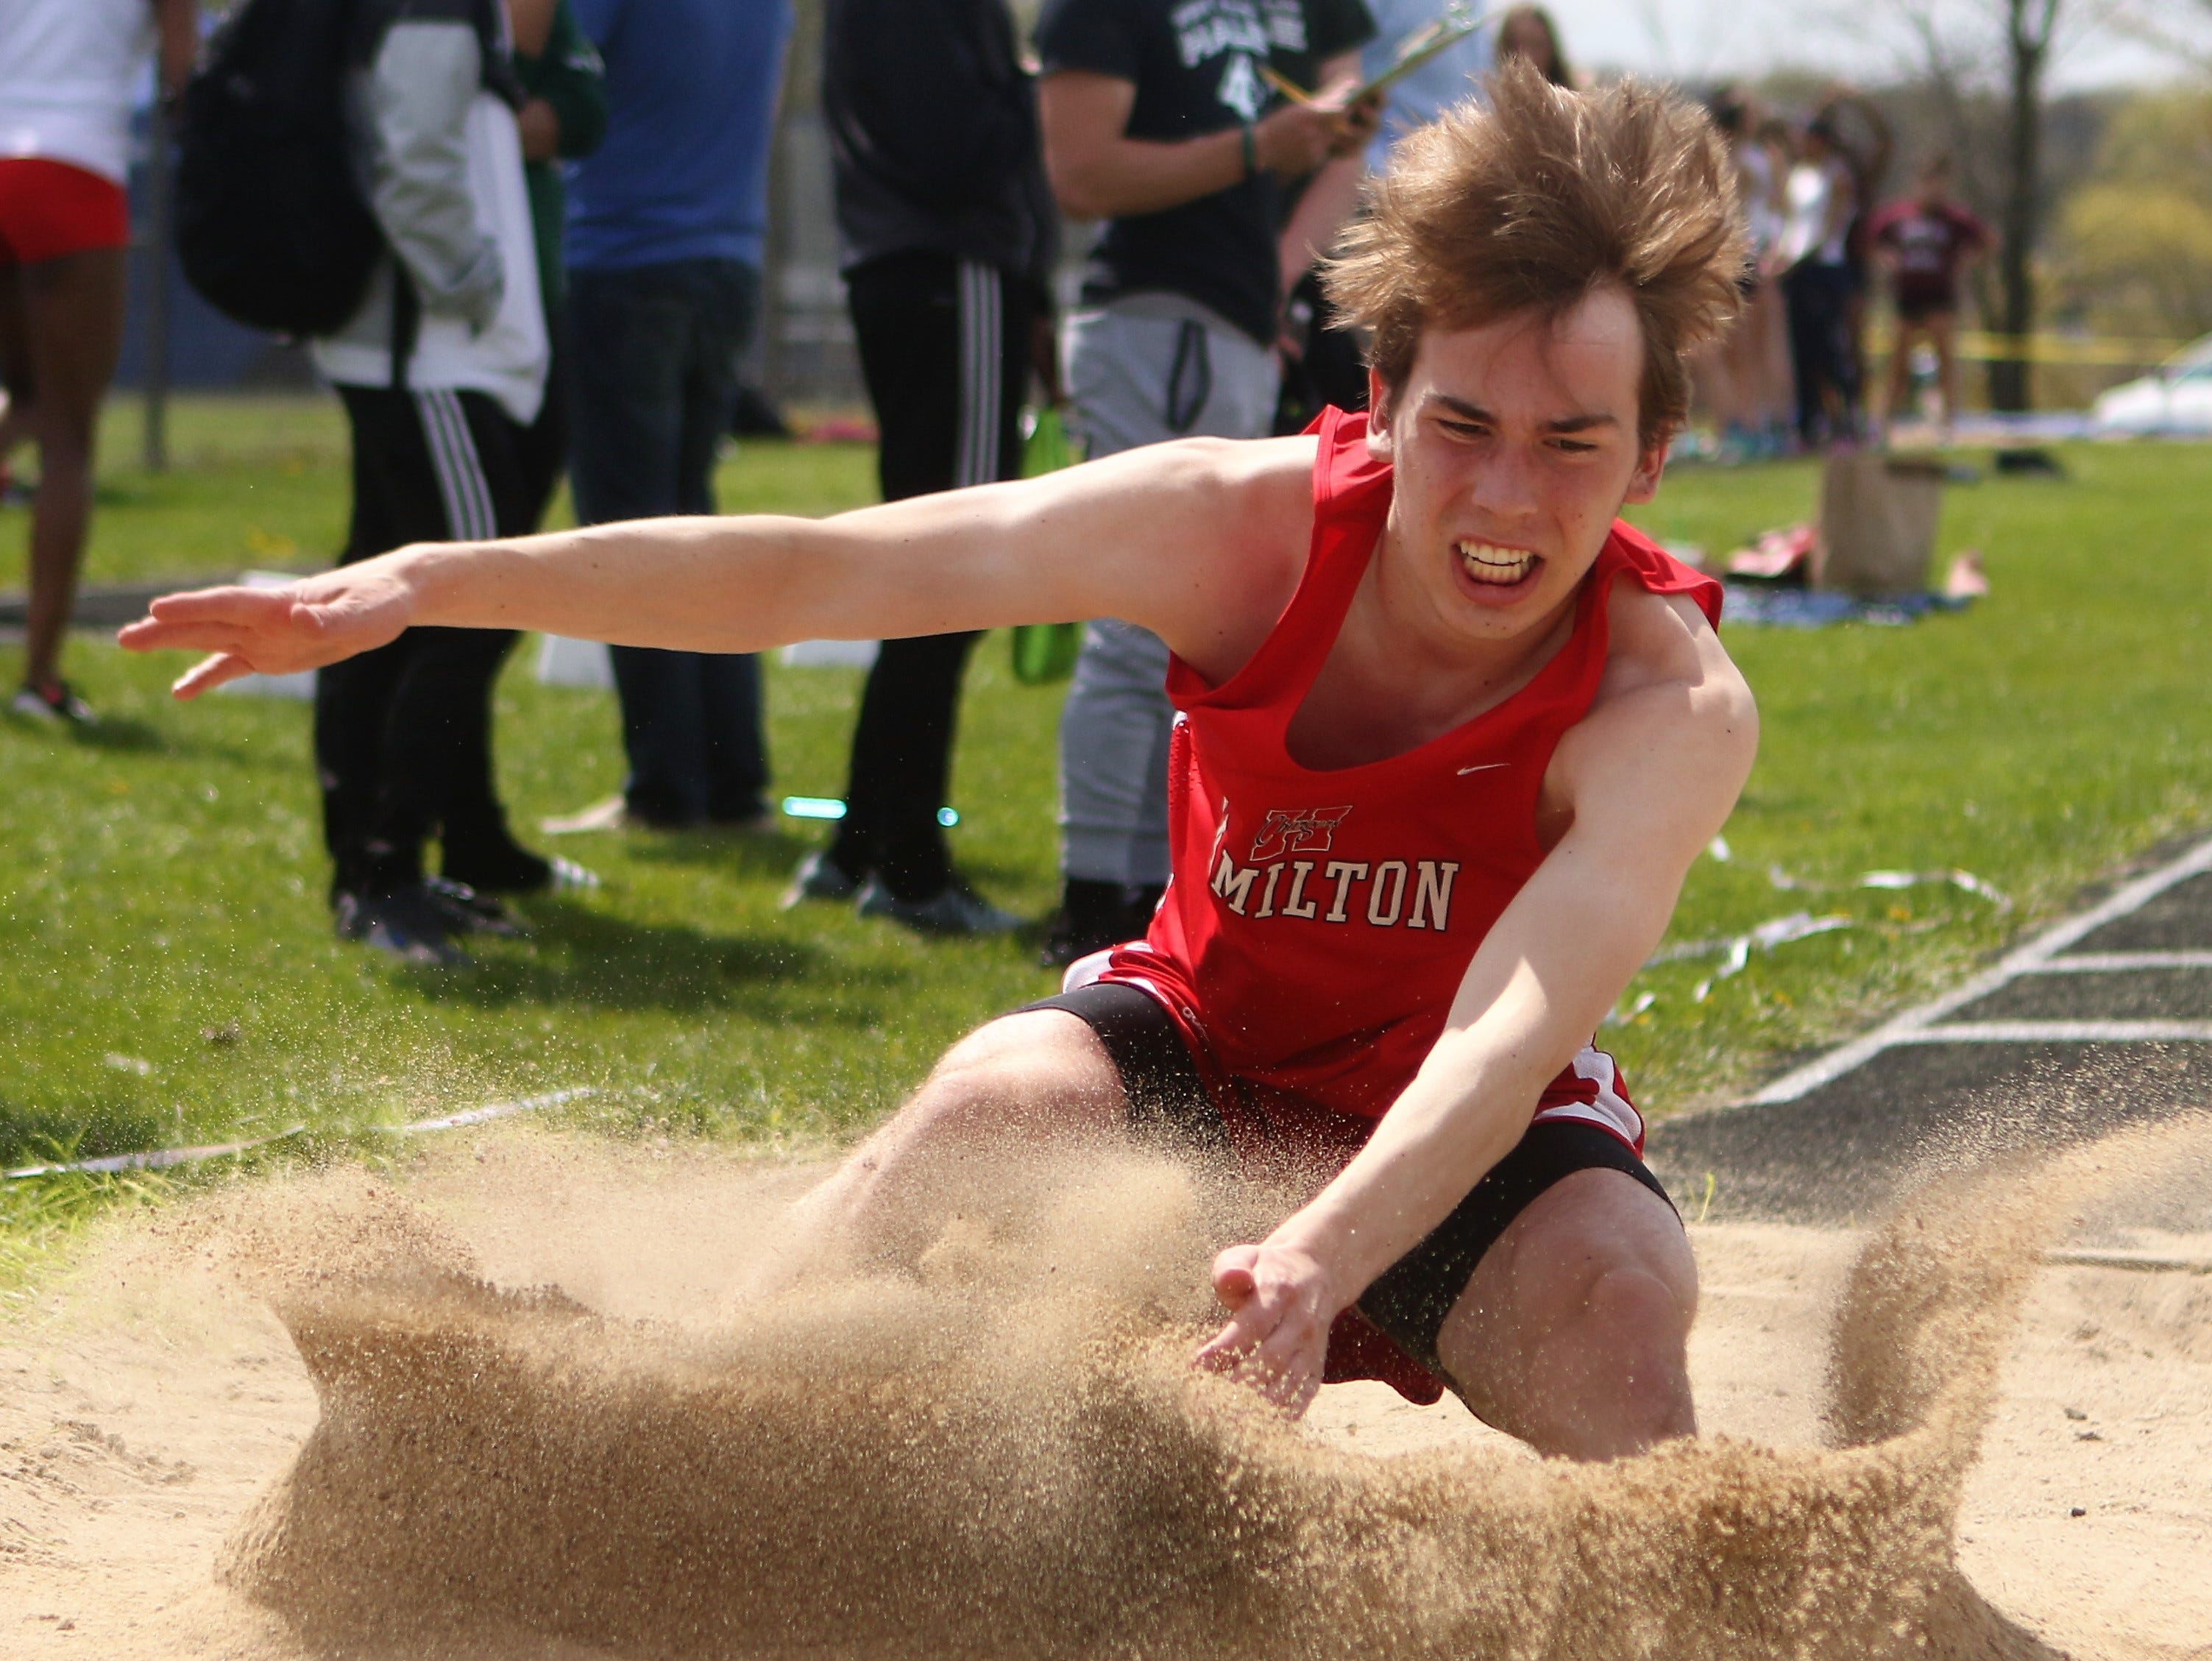 Sussex Hamilton's Joey Geels lands during the long jump competition at the Greater Metro Conference meet on May 14, 2019.